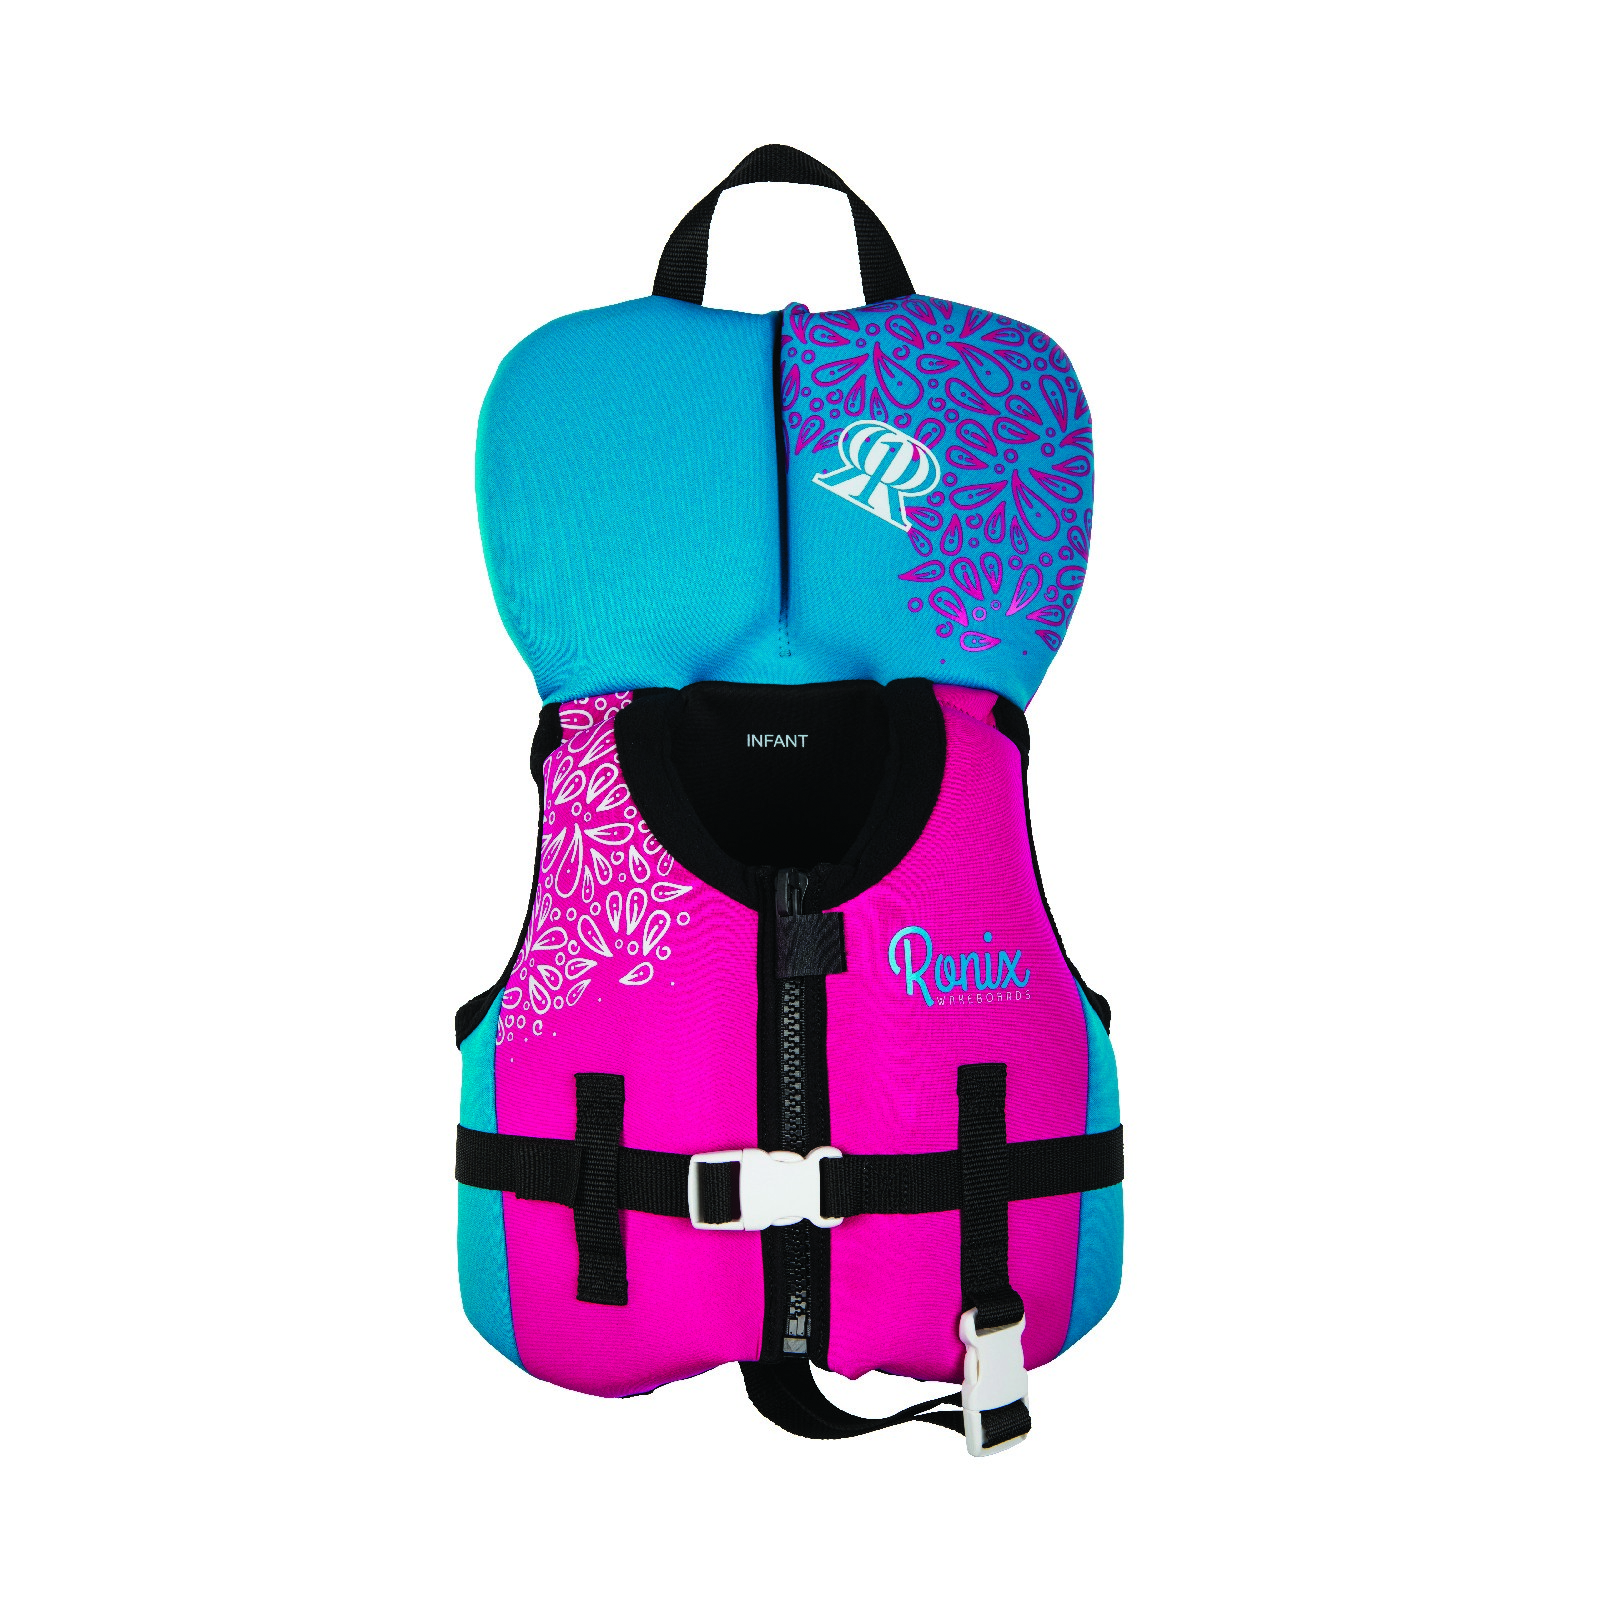 AUGUST GIRL'S NEO VEST - TODDLER 0-14KG RONIX 2019